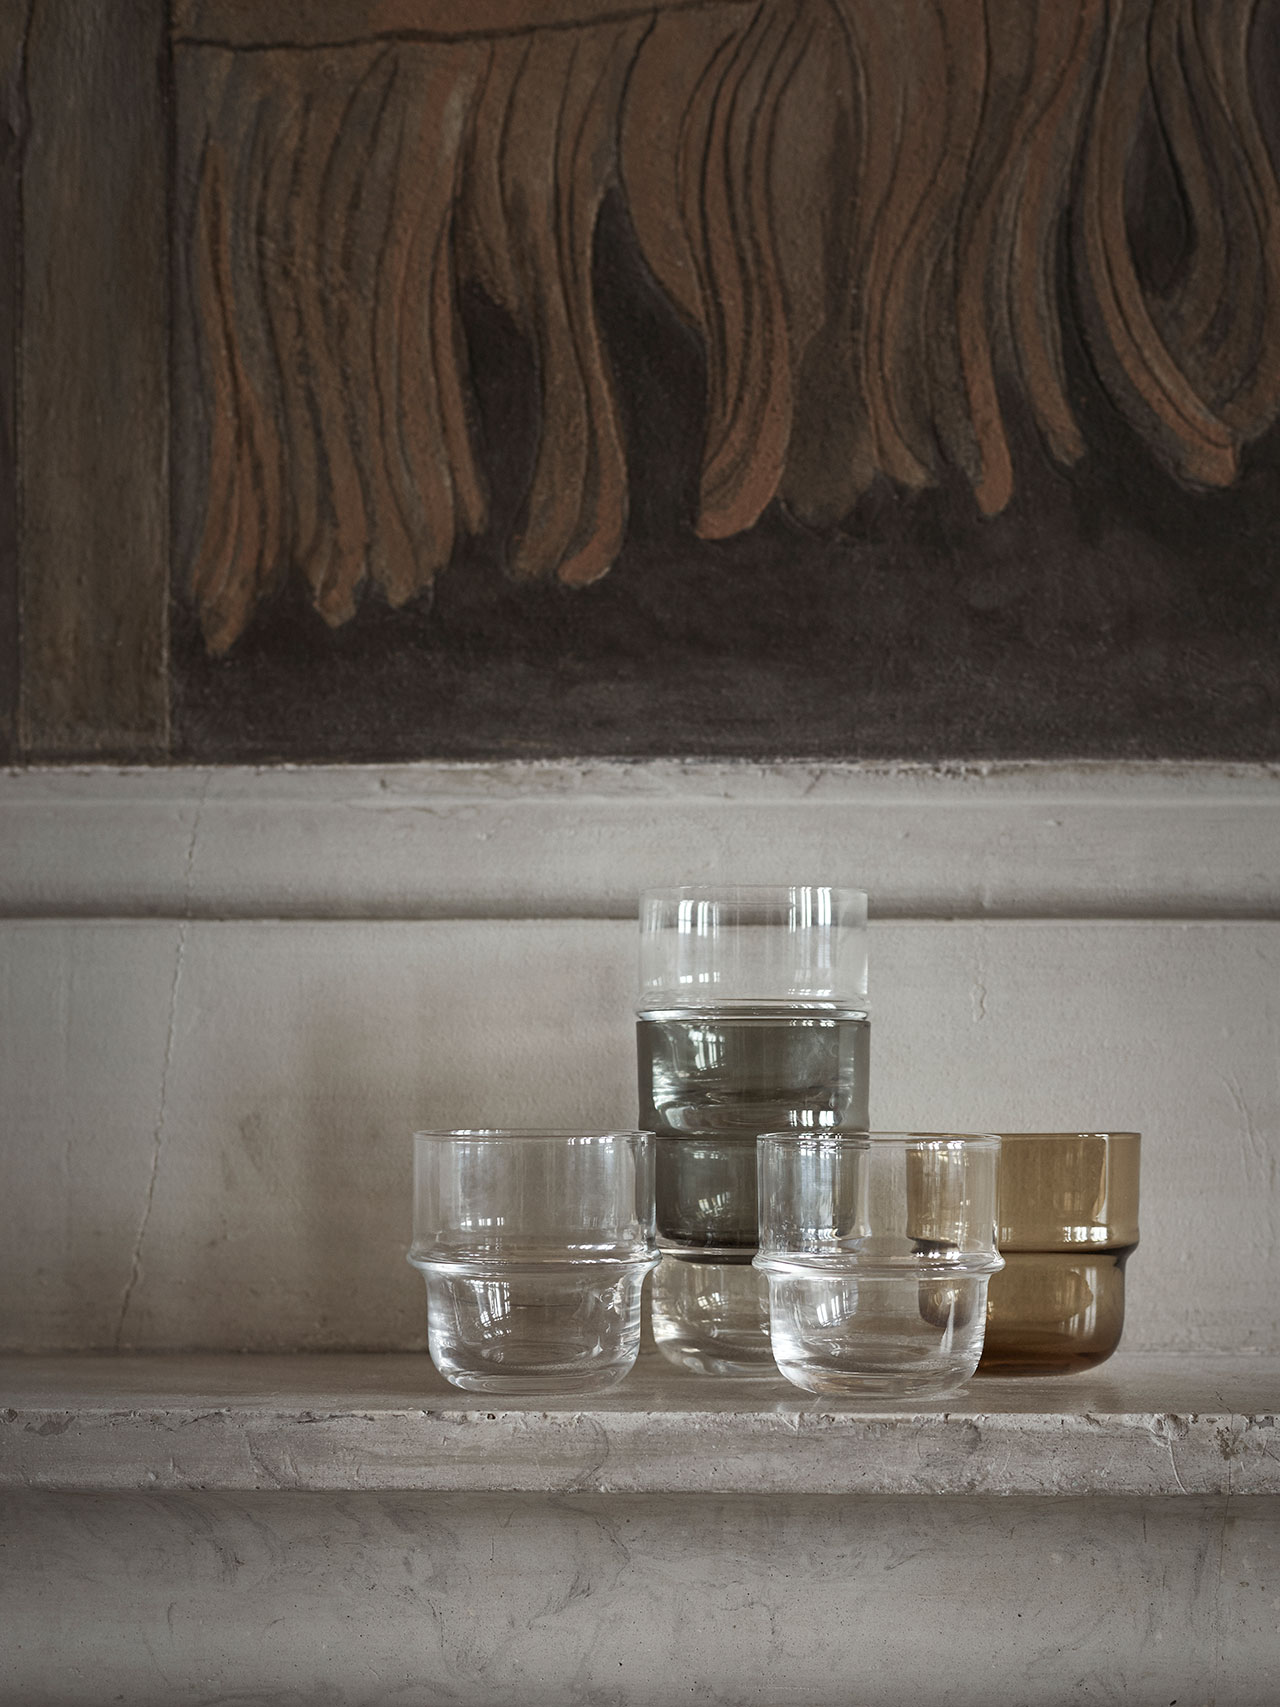 """NM& 063:Everyday glasses """"Unda"""" by Matti Klenellproduced by Design House Stockholm. Photo by Pia Ulin."""